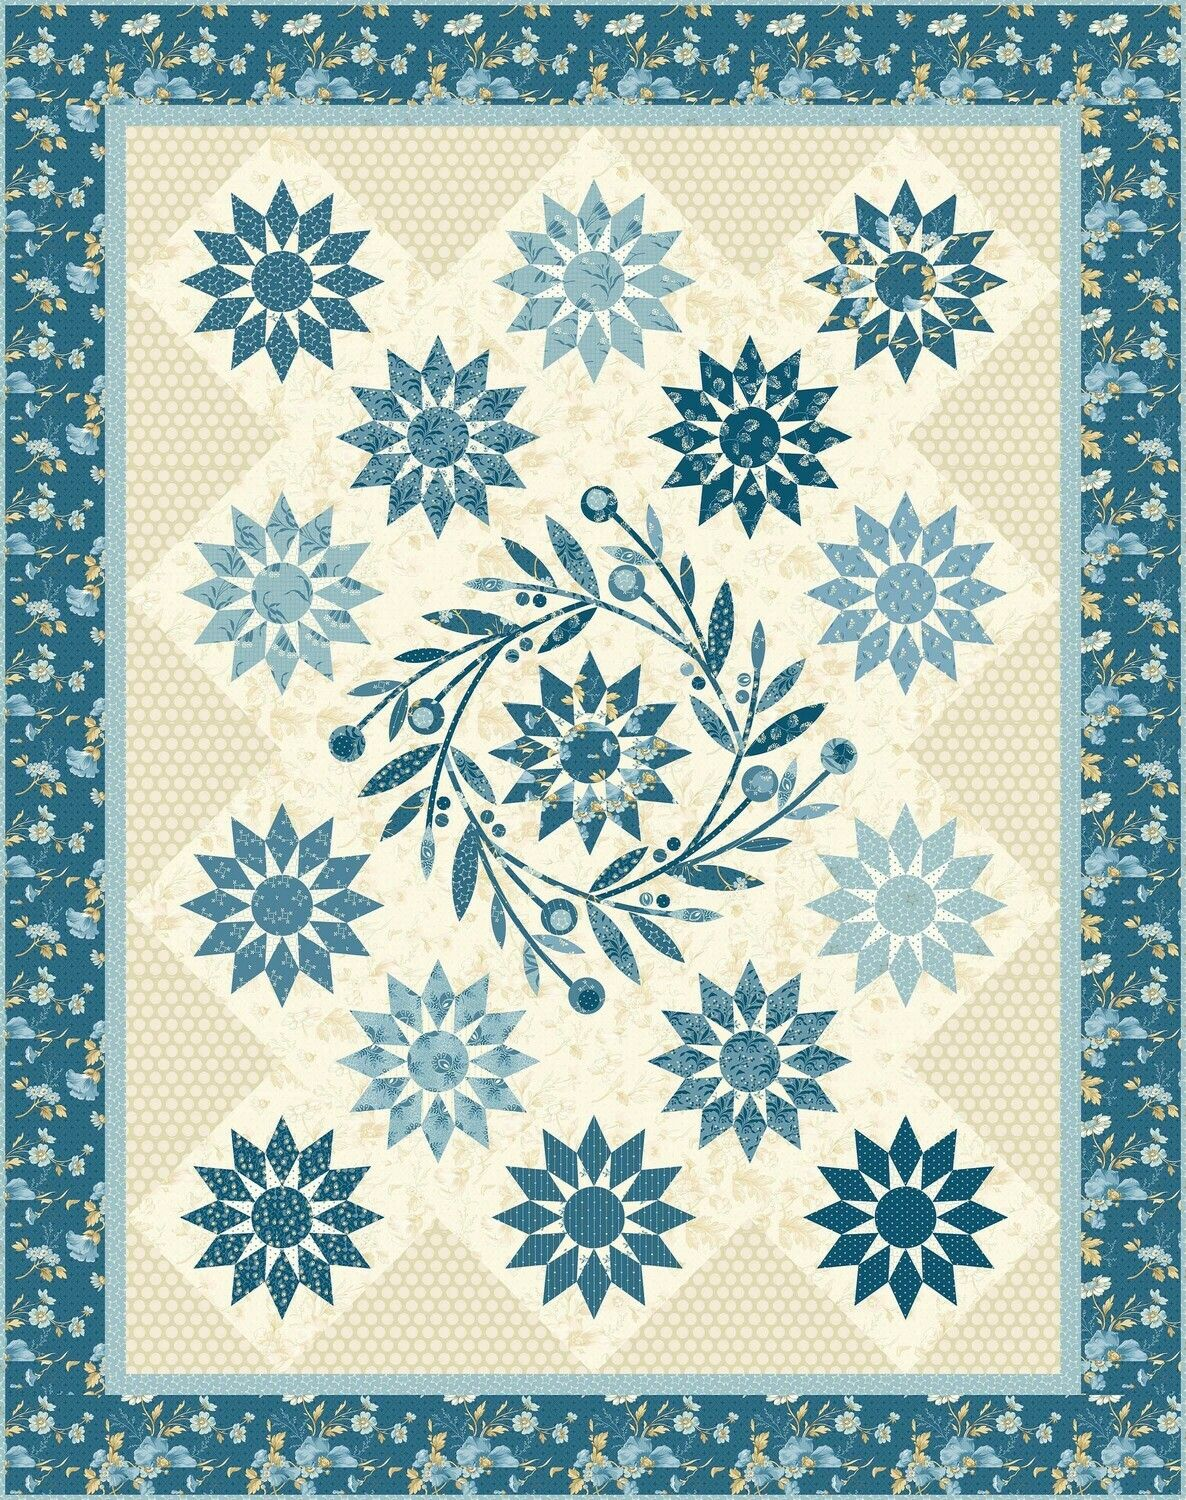 Blooming Star In 2020 Basket Quilt Star Quilt Patterns Laundry